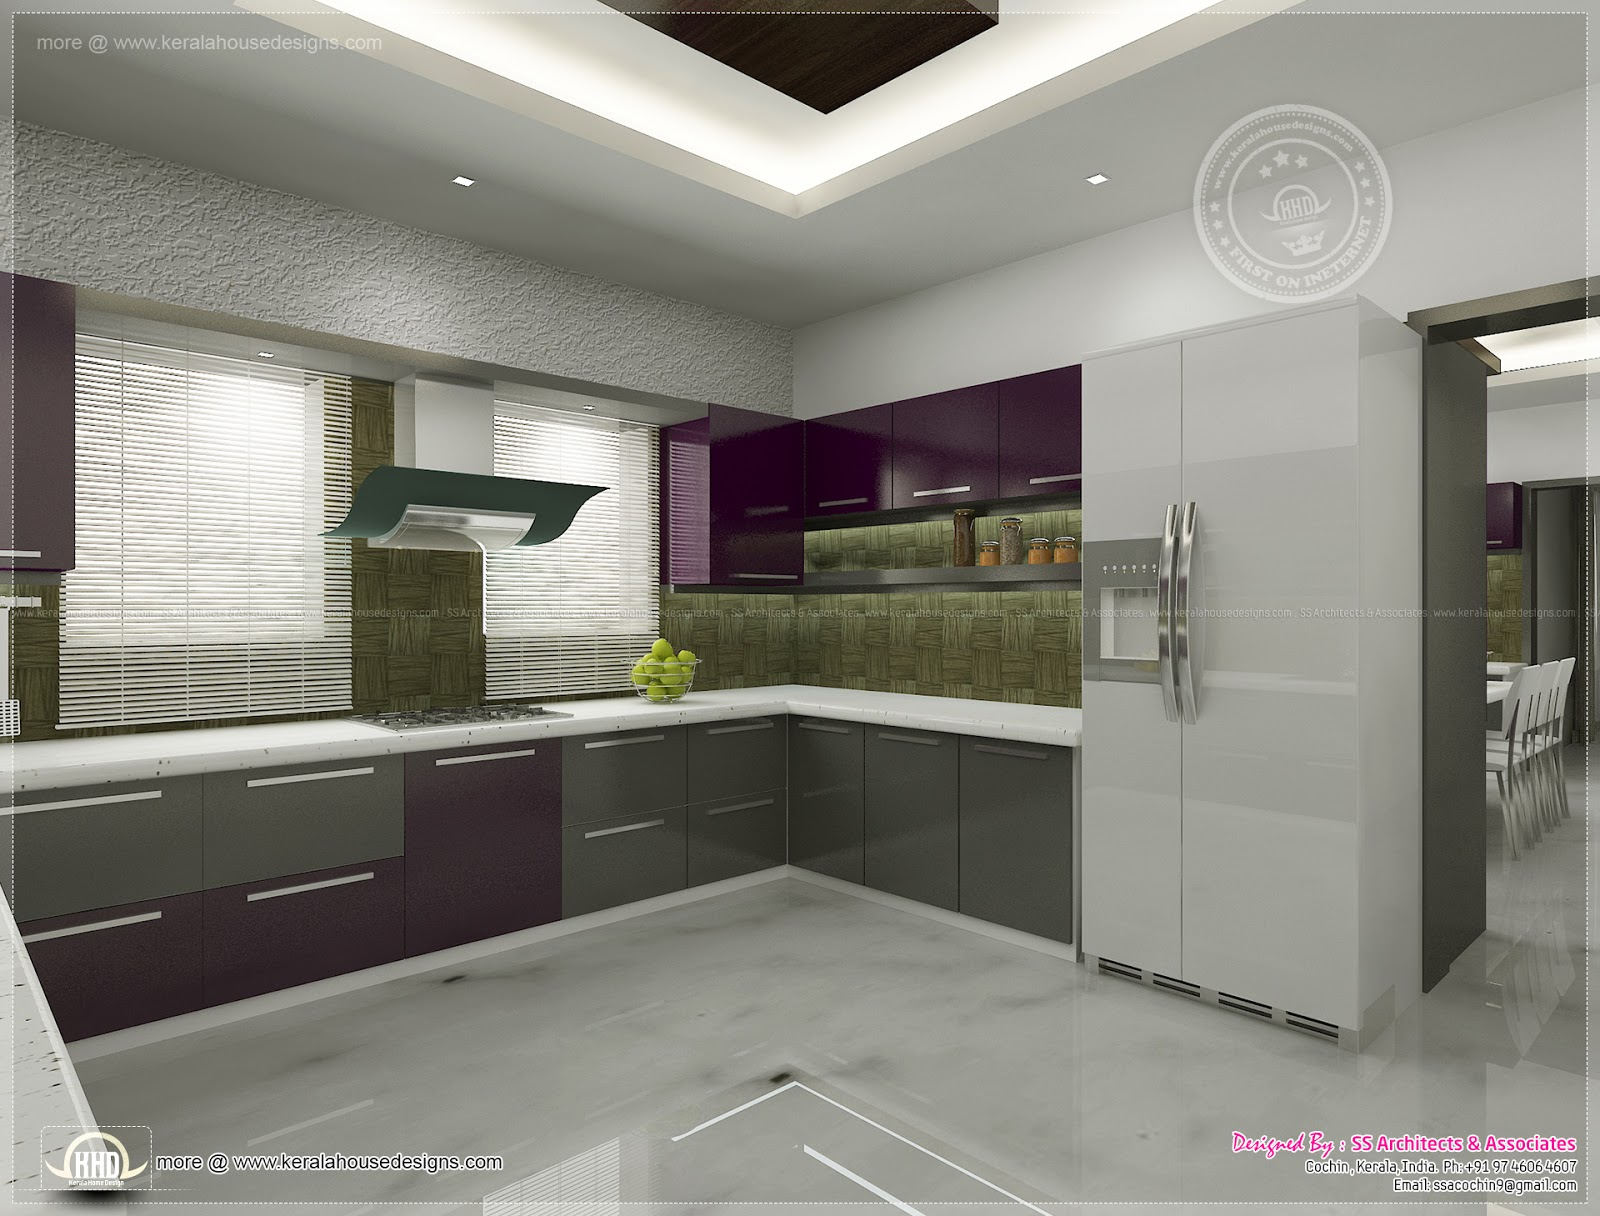 Kitchen interior views by ss architects cochin home for Kitchen interior design styles